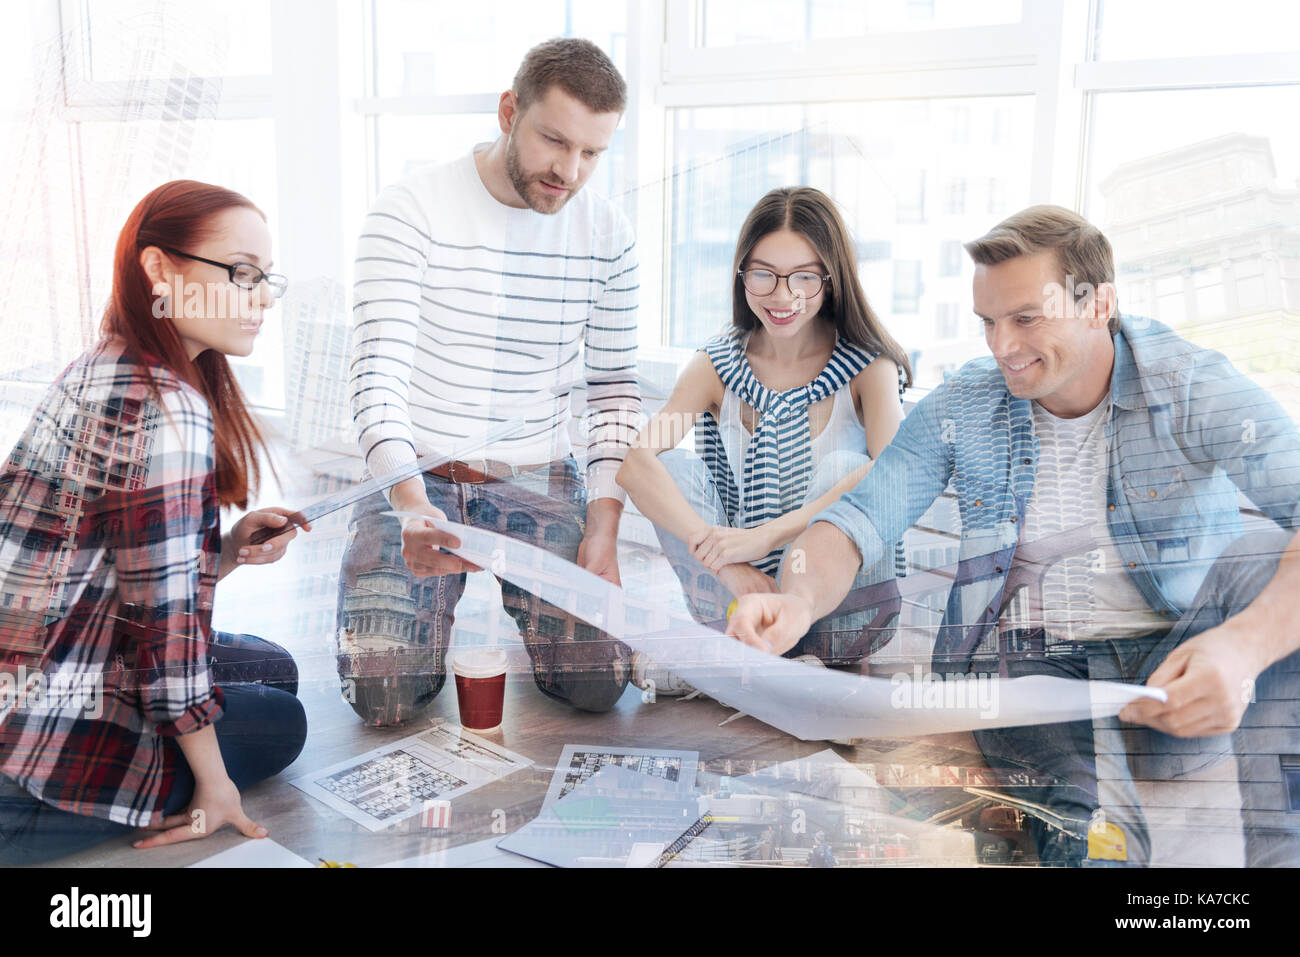 Interested coworkers looking at the sketch - Stock Image